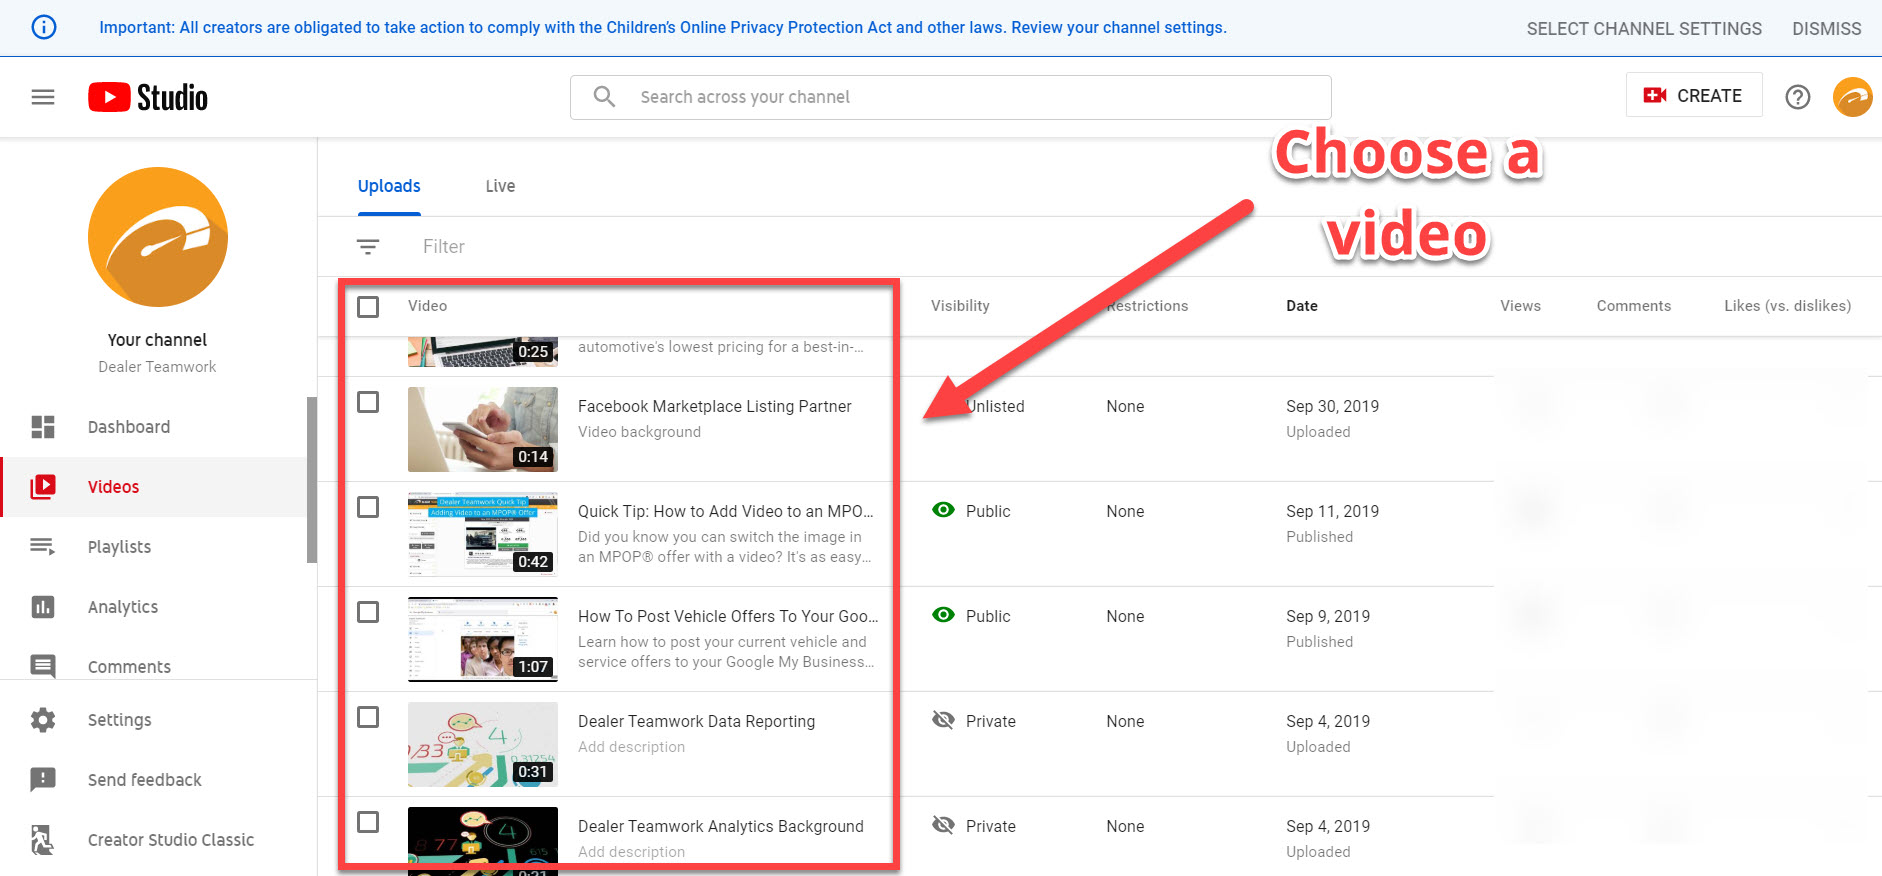 Choose video to edit - YouTube Studio - Dealer Teamwork